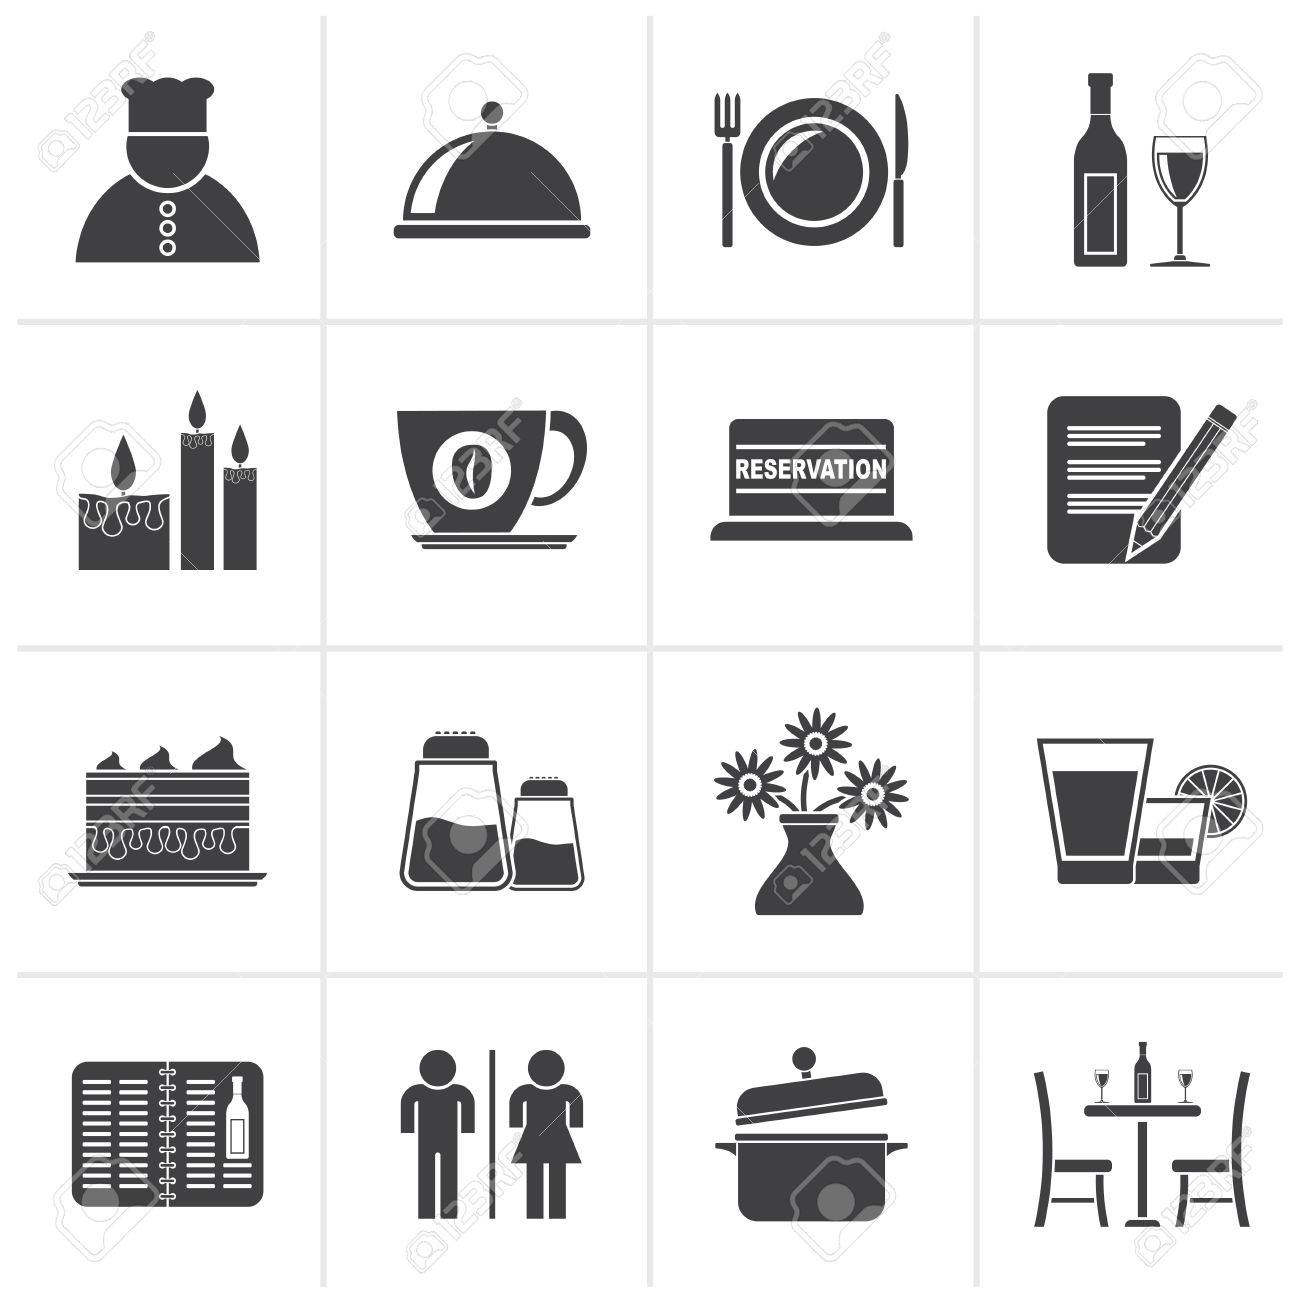 Black Restaurant Cafe And Bar Icons Vector Icon Set Royalty Free Cliparts Vectors And Stock Illustration Image 48221005